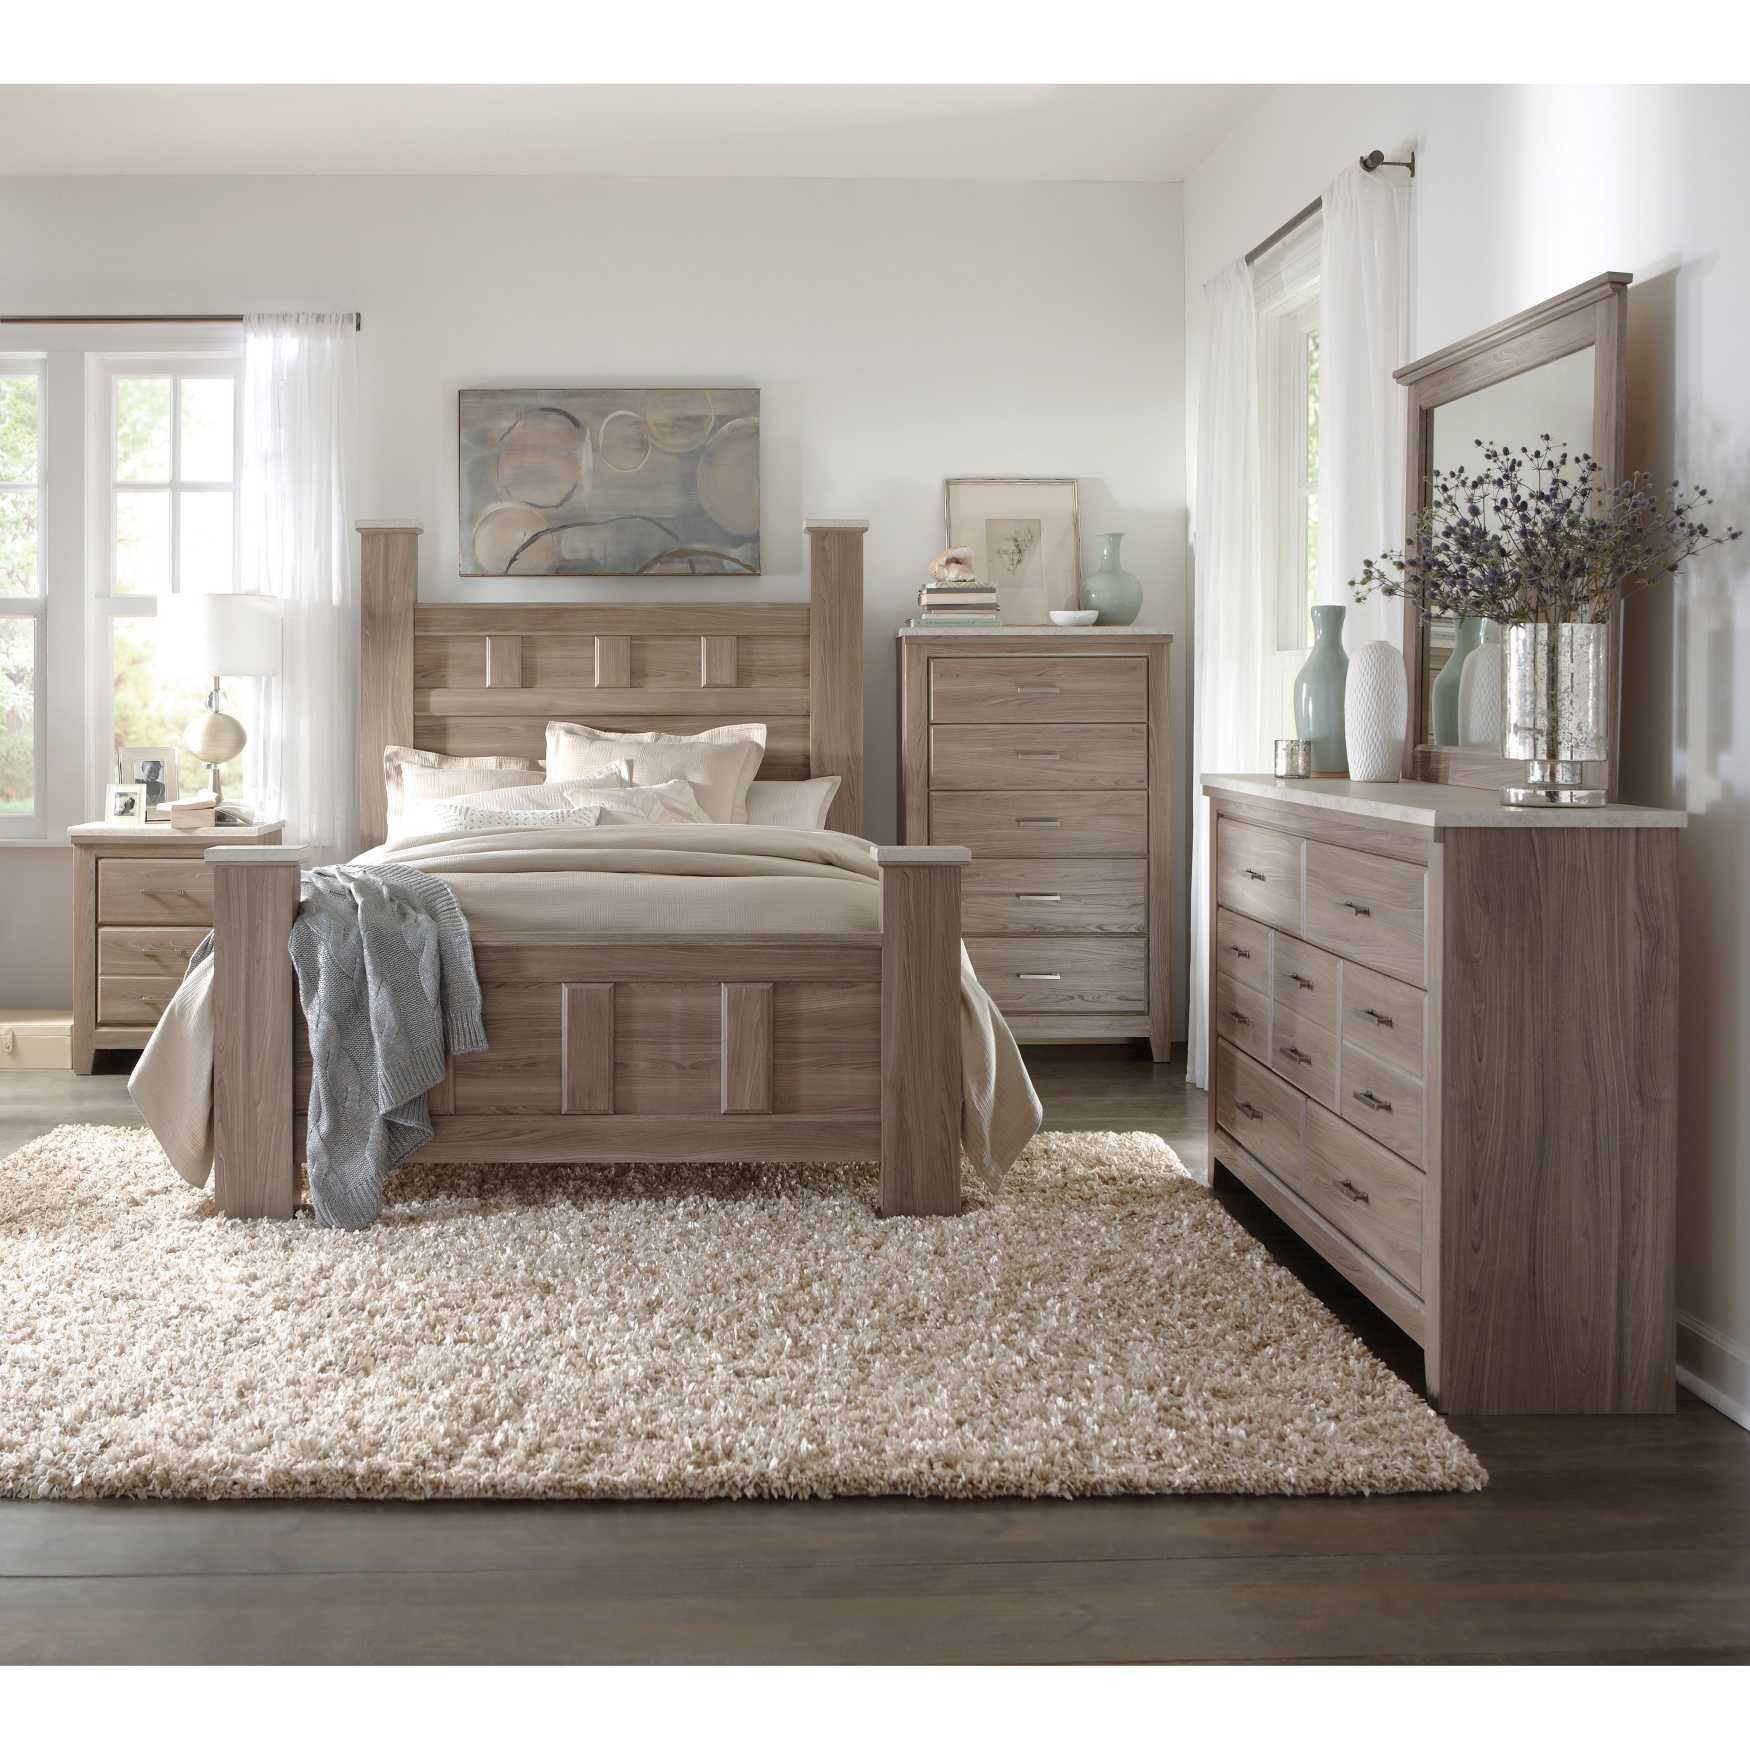 Find Bedroom Furniture Sets Buy now Pay Later | Desain